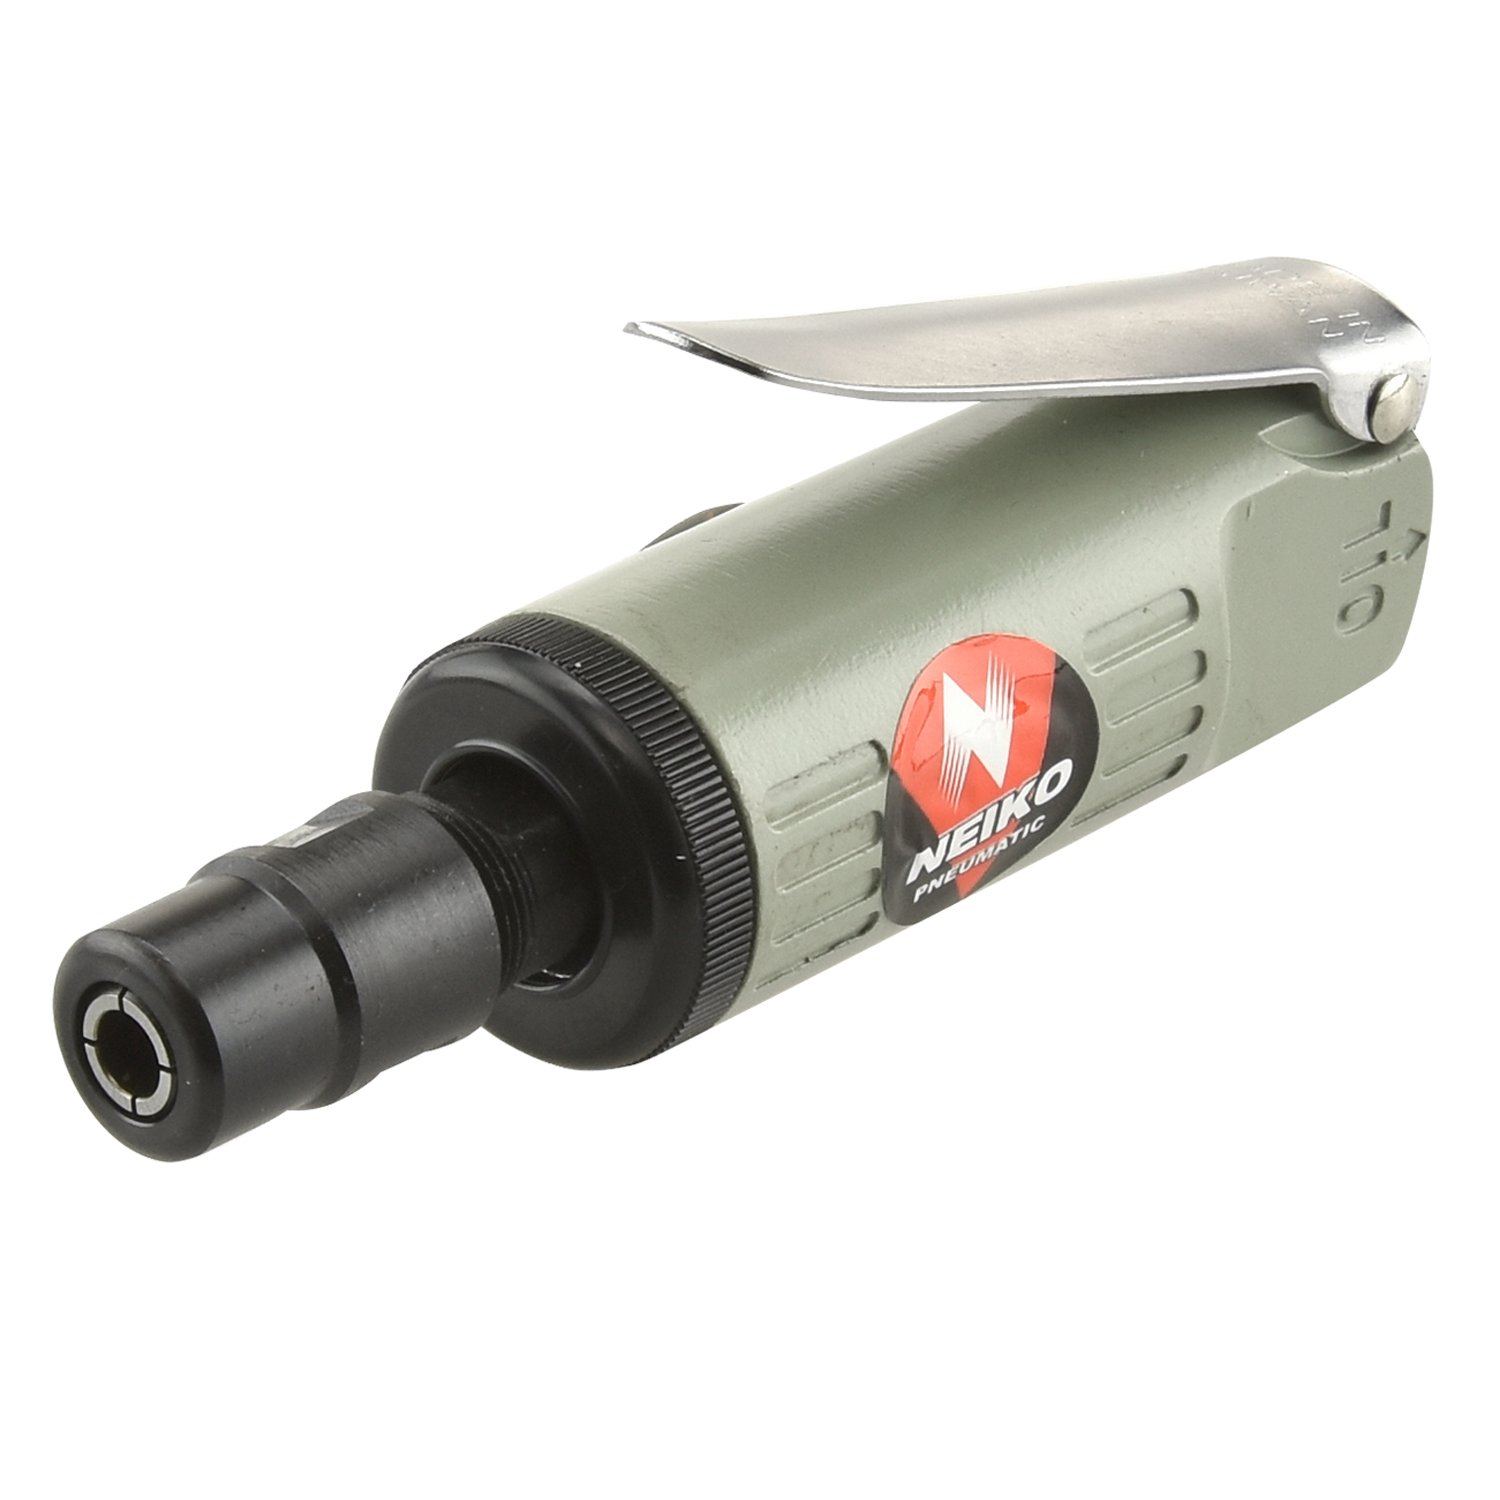 Mini and Compact Size Neiko 30062A 1//4 Air Die Grinder 24,000 RPM Free Speed